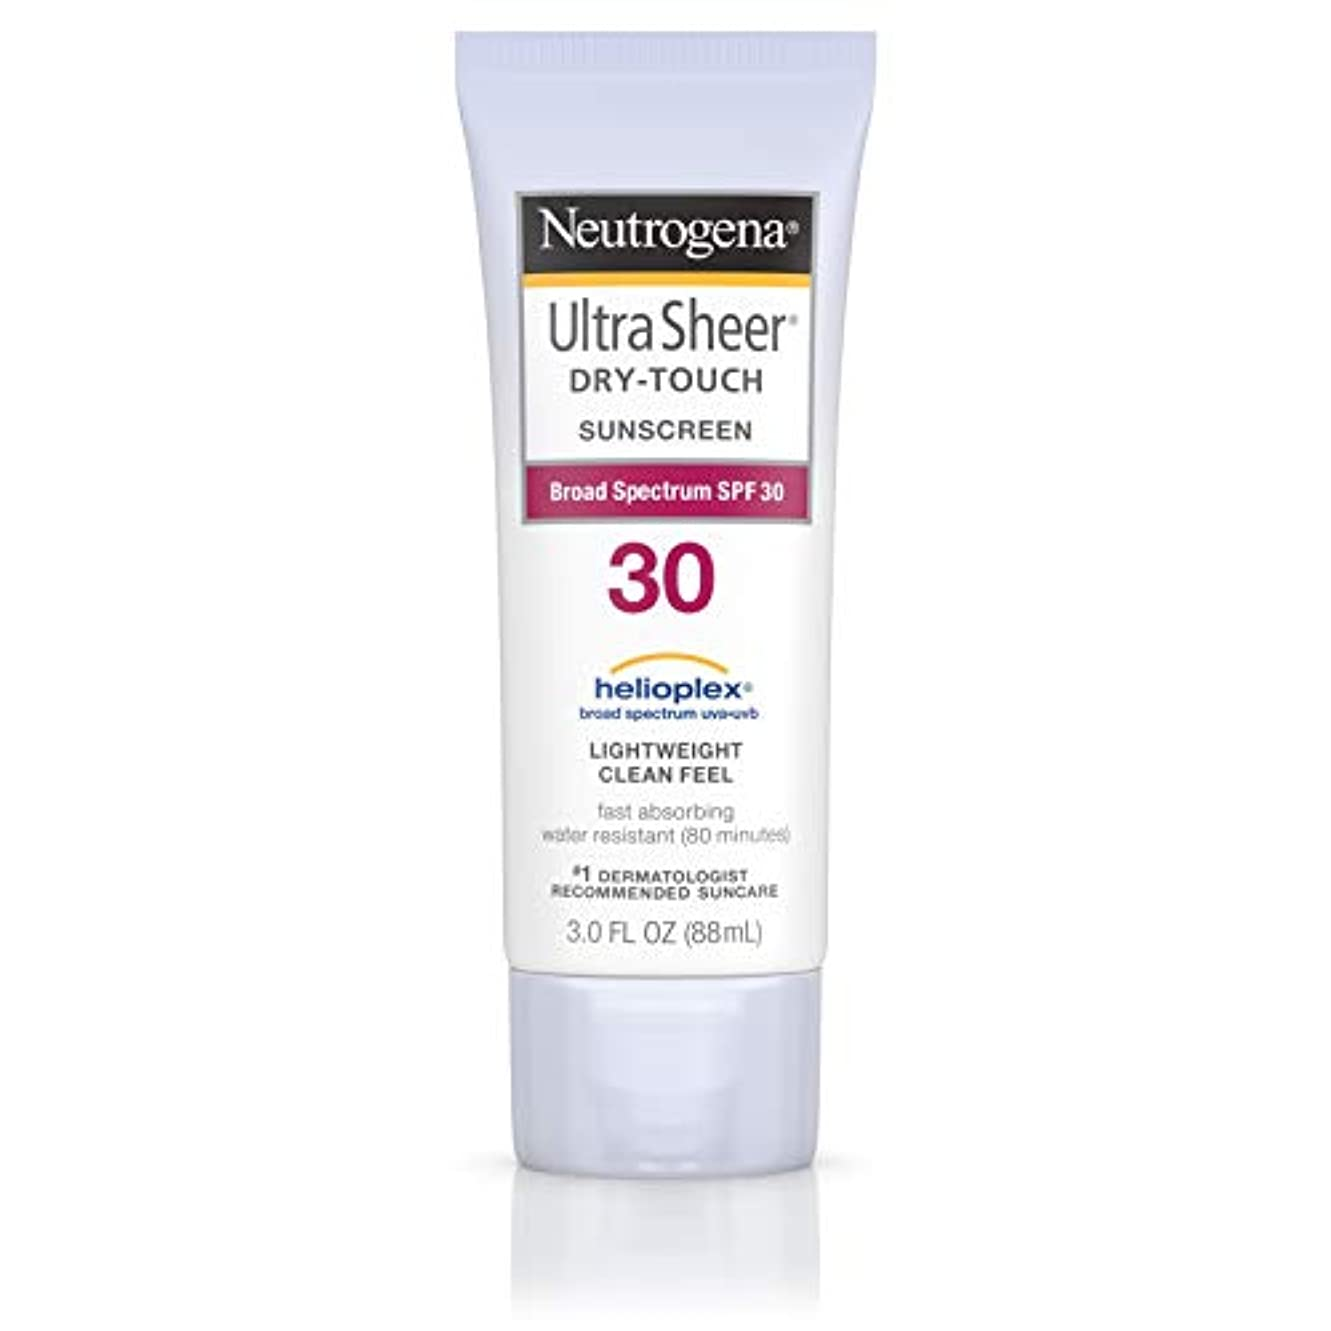 申込み宗教ドールNeutrogena Ultra Sheer Sunblock Dry Touch SPF 30 (並行輸入品)